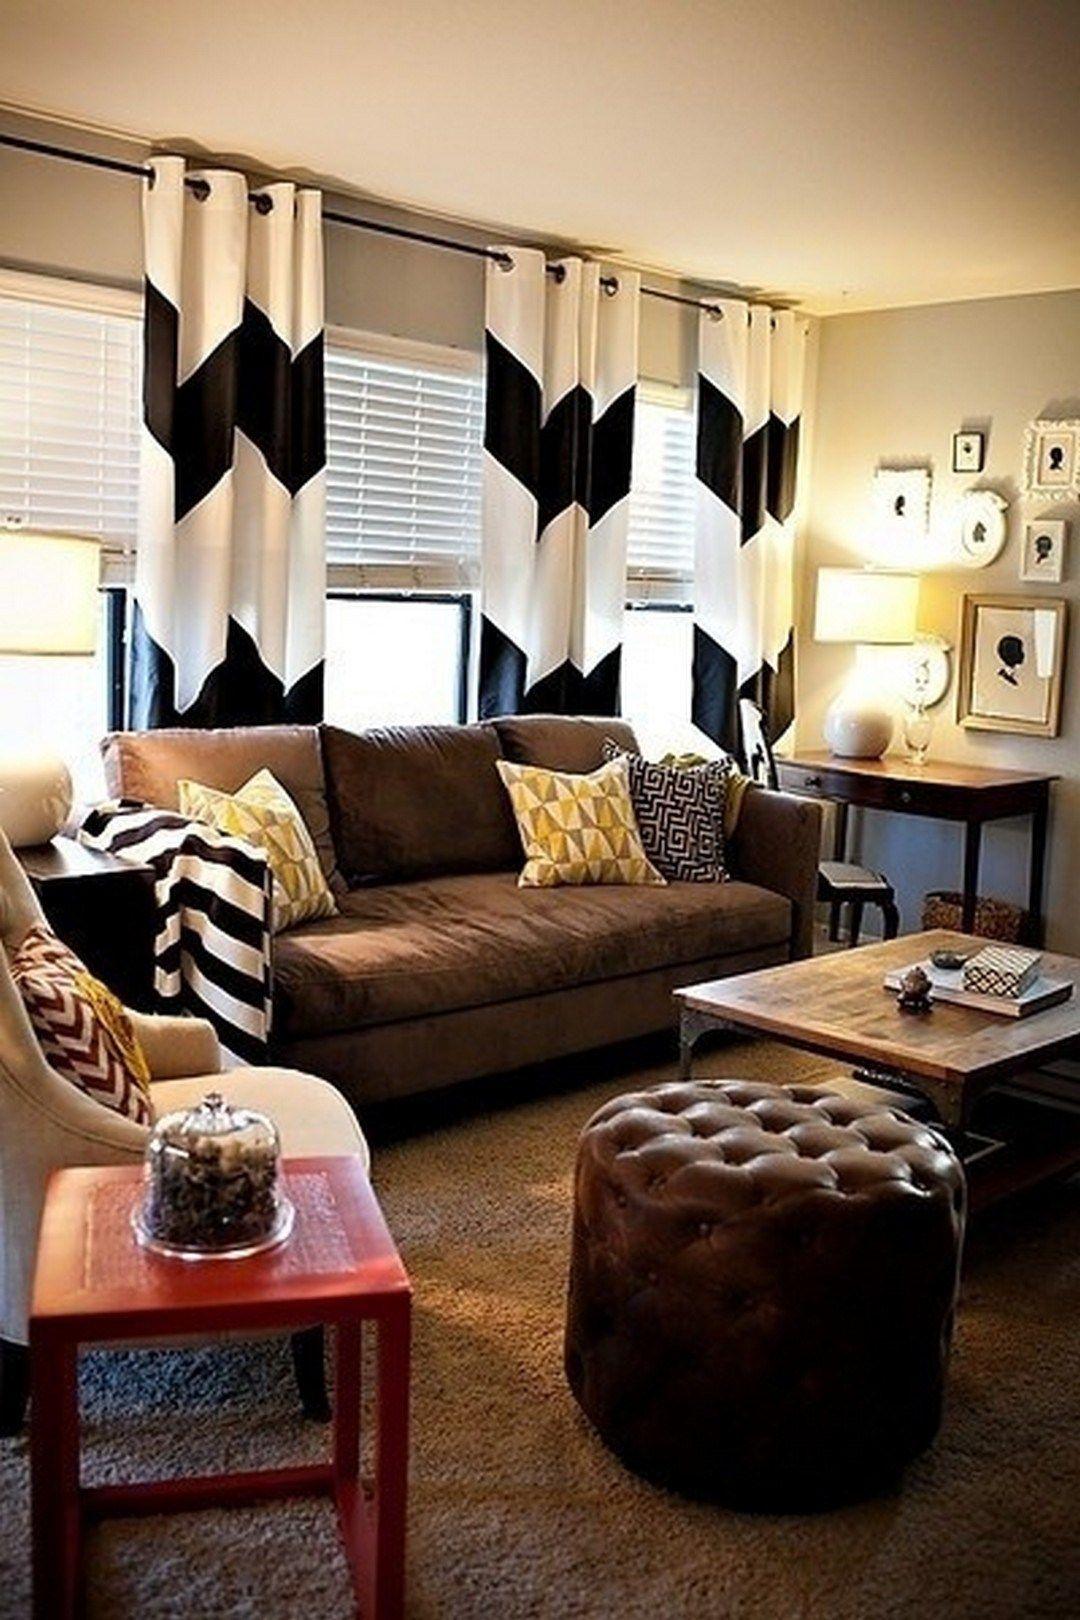 99 Living Room Design Ideas On A Budget You Should Try (41)   4 kids ...